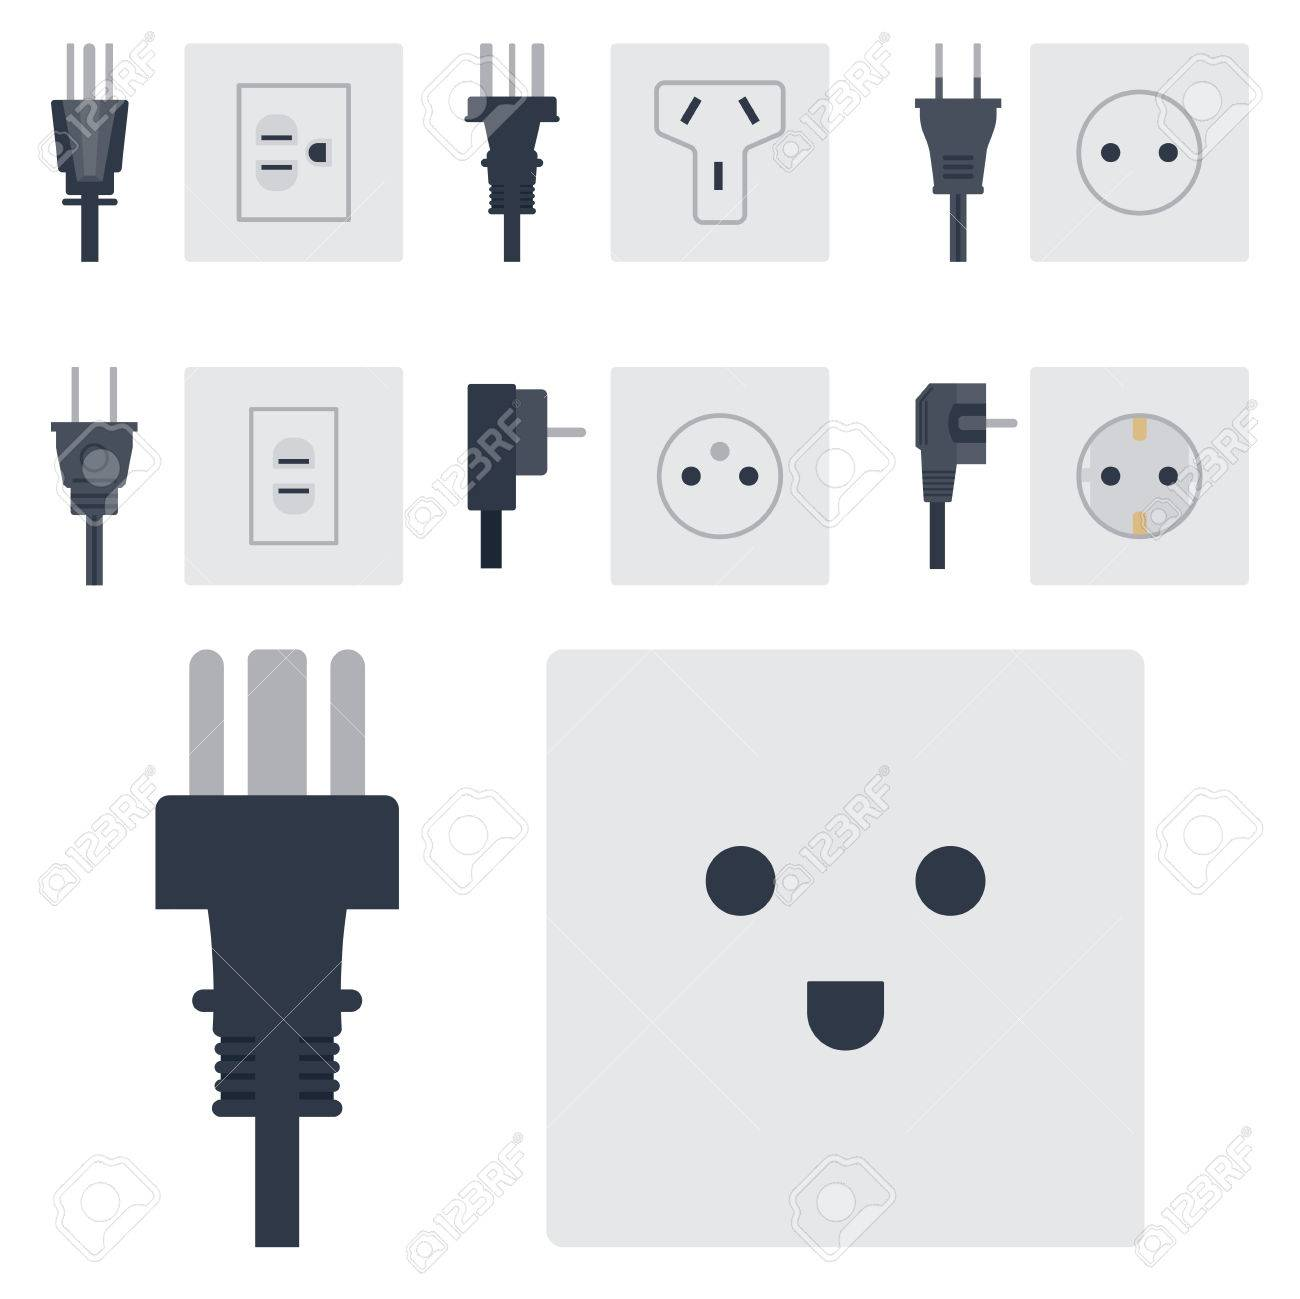 Electric Outlet Vector Illustration Energy Socket Electrical ...